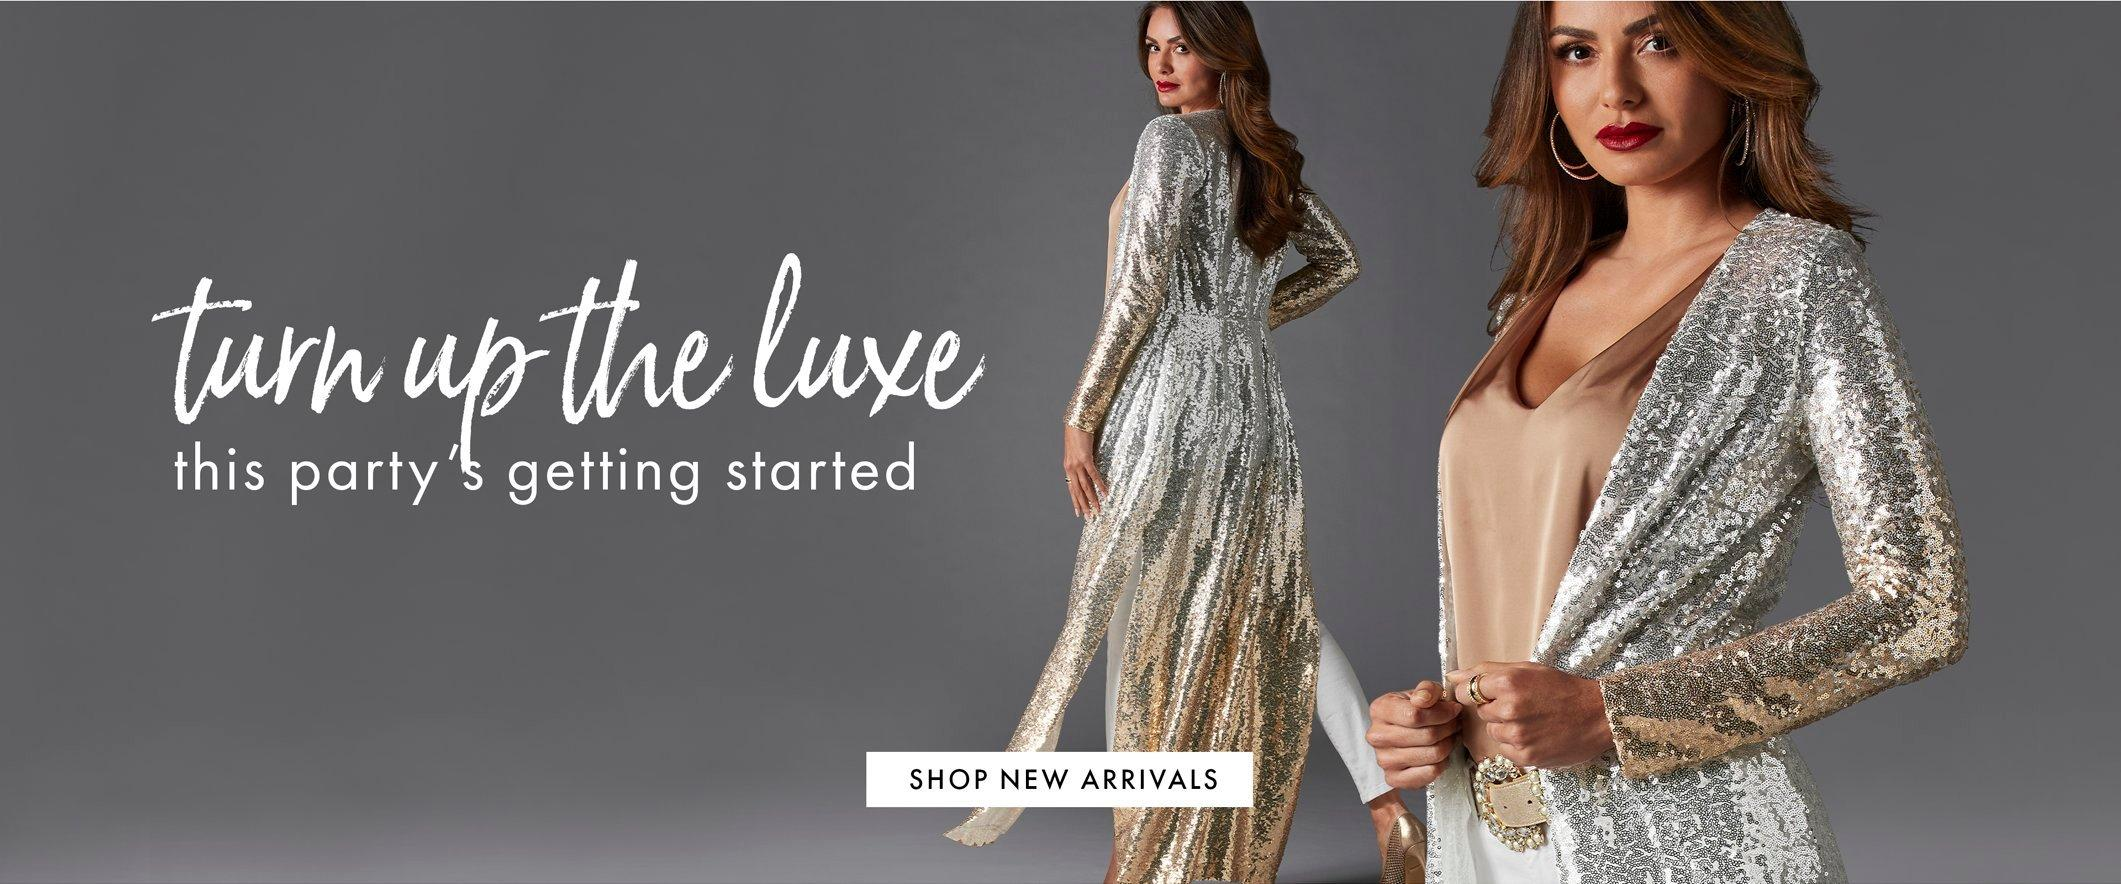 model wearing a silver and gold ombre sequin duster, tan v-neck top, gold jeweled belt, and white jeans. text: turn up the luxe. this party's getting started.